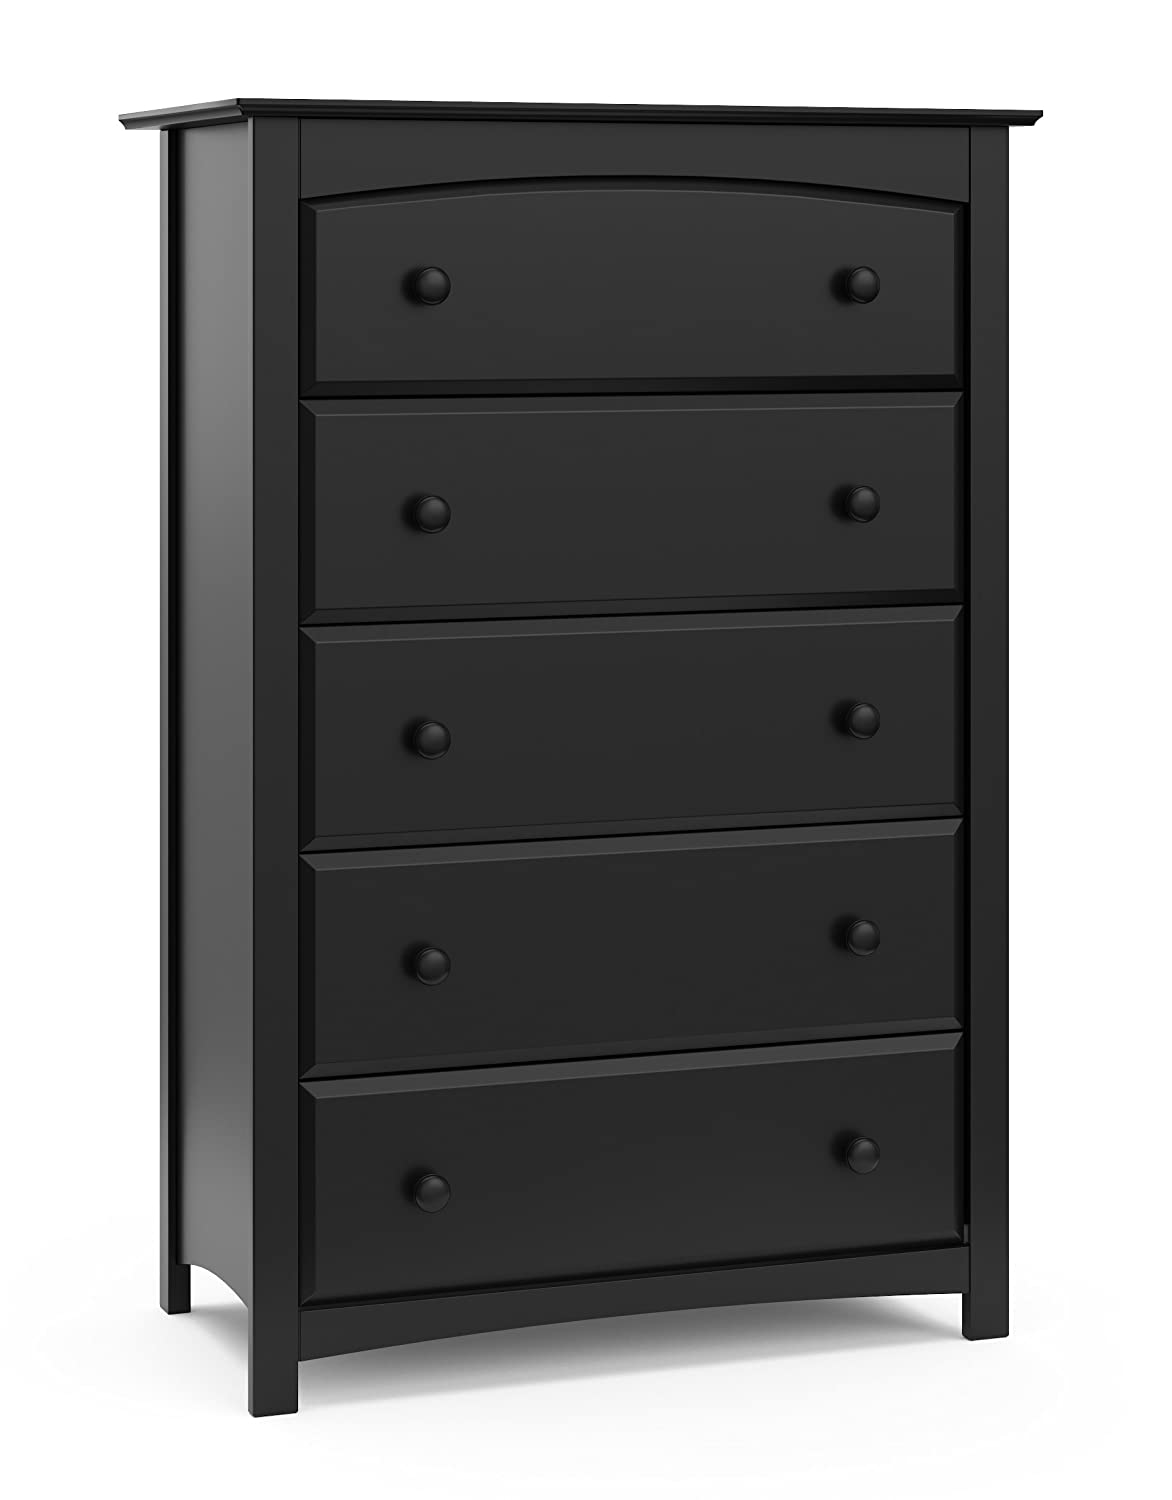 Storkcraft Kenton 5 Drawer Universal Dresser   Wood and Composite Construction, Ideal for Nursery, Toddlers or Kids Room   Black : Baby